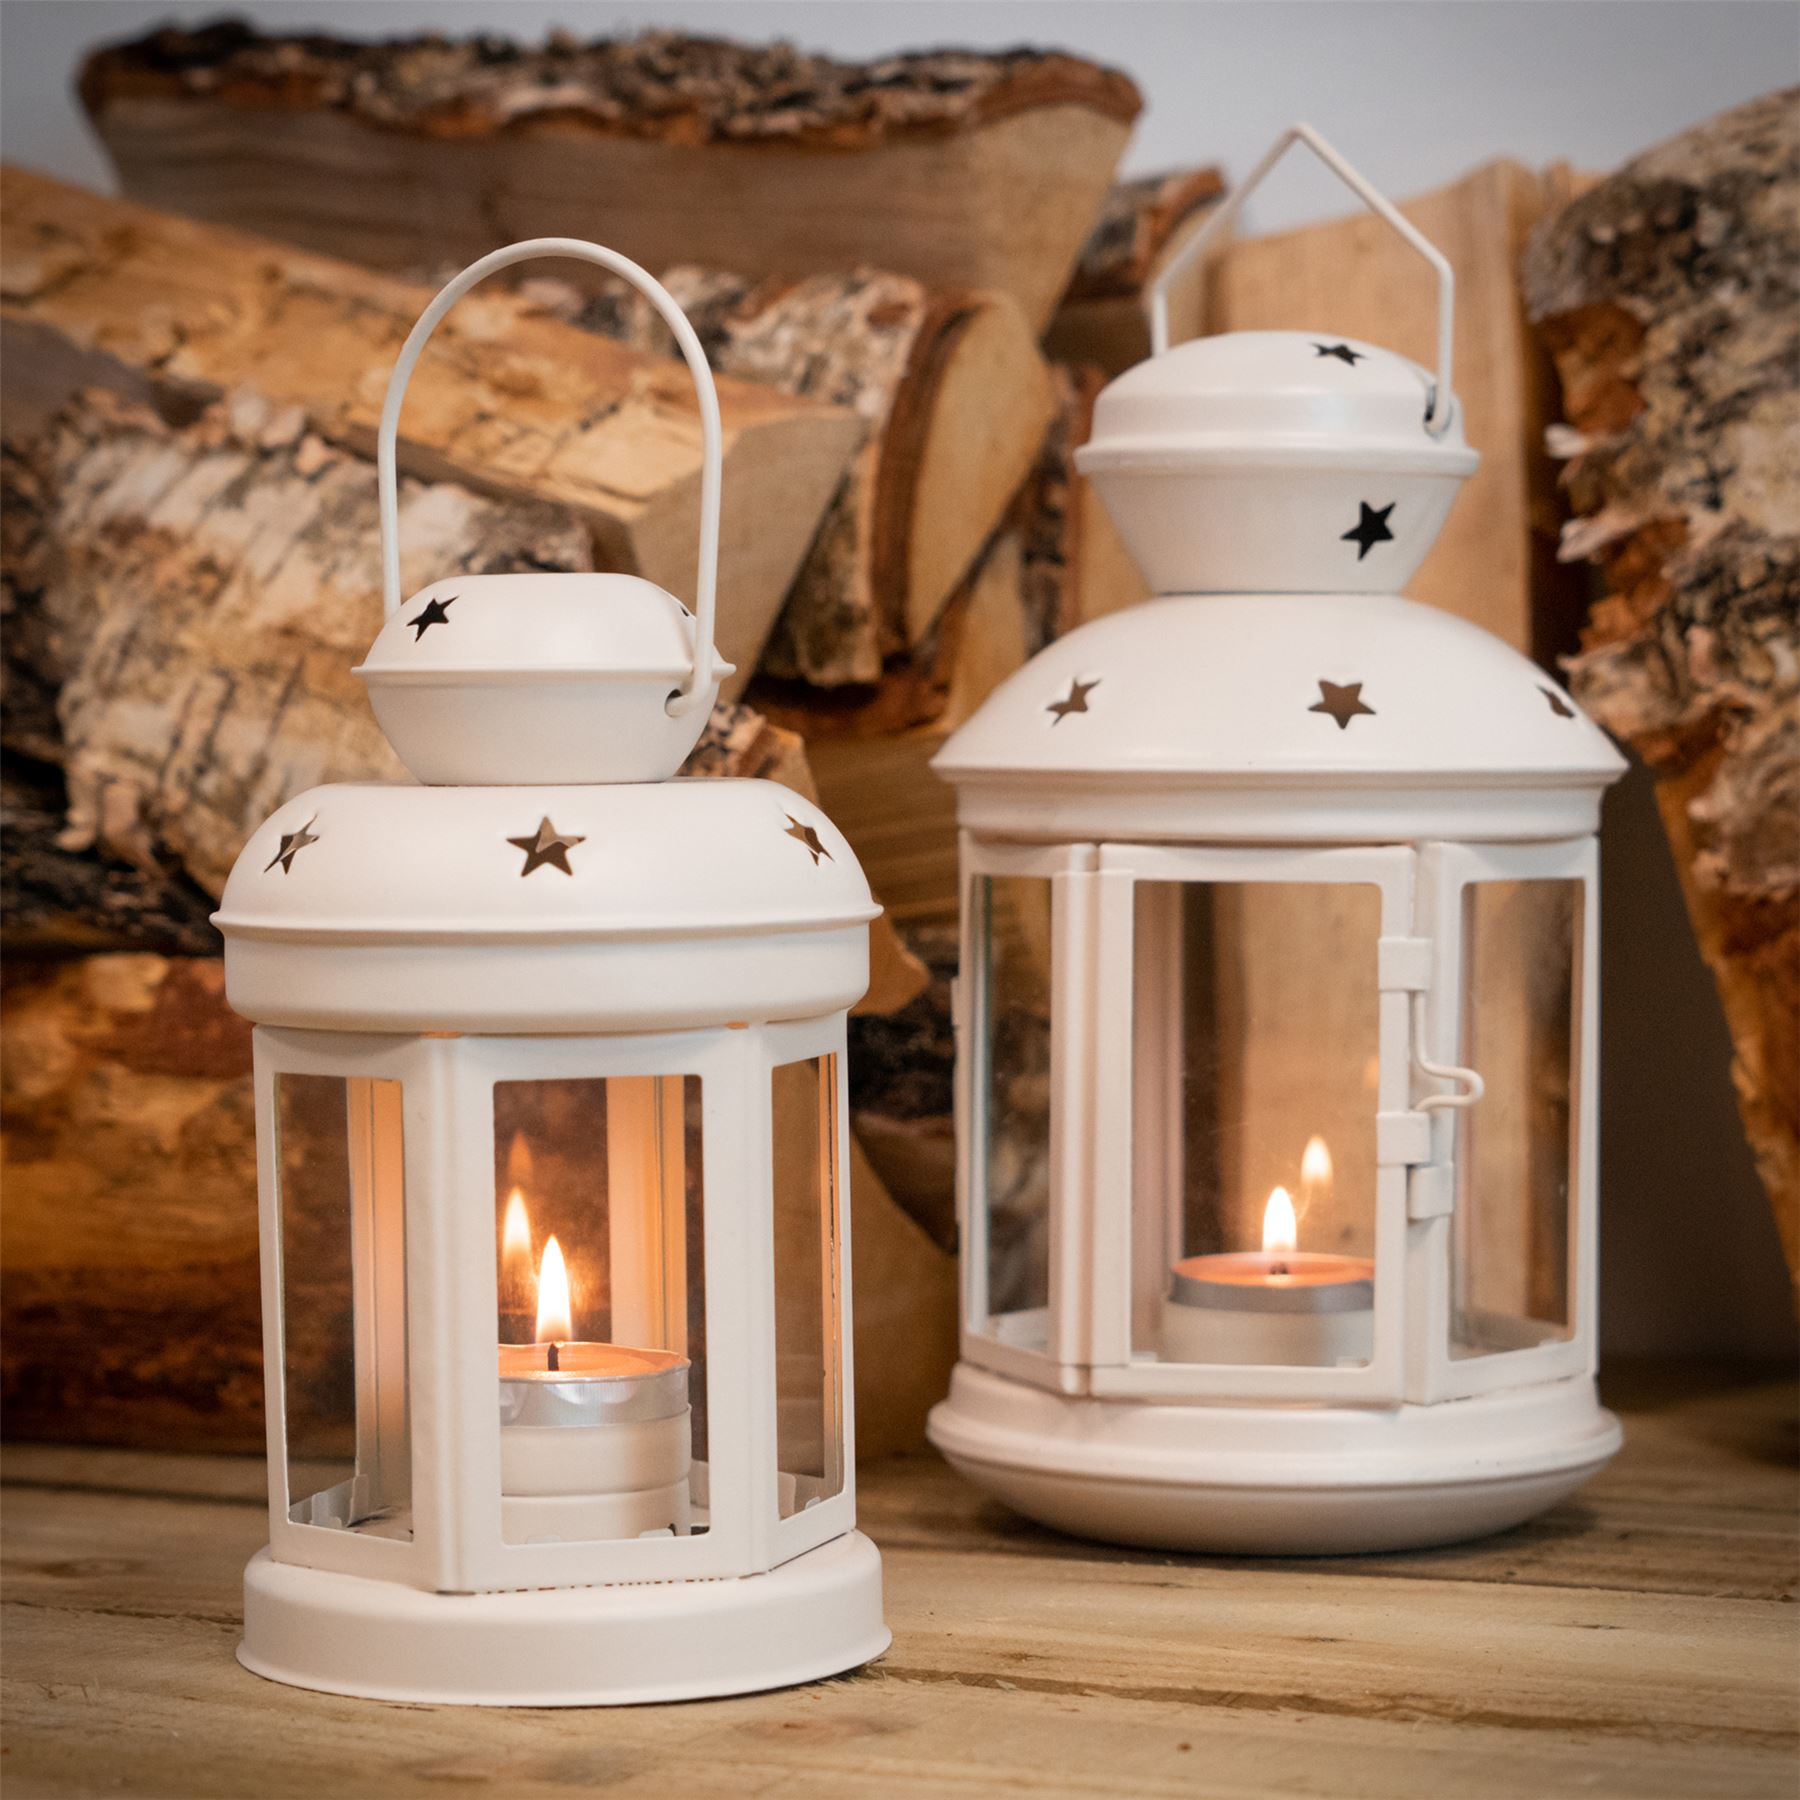 Metal-Candle-Lanterns-Tealight-Holders-Vintage-French-Moroccan-Style-20cm-x2 thumbnail 13